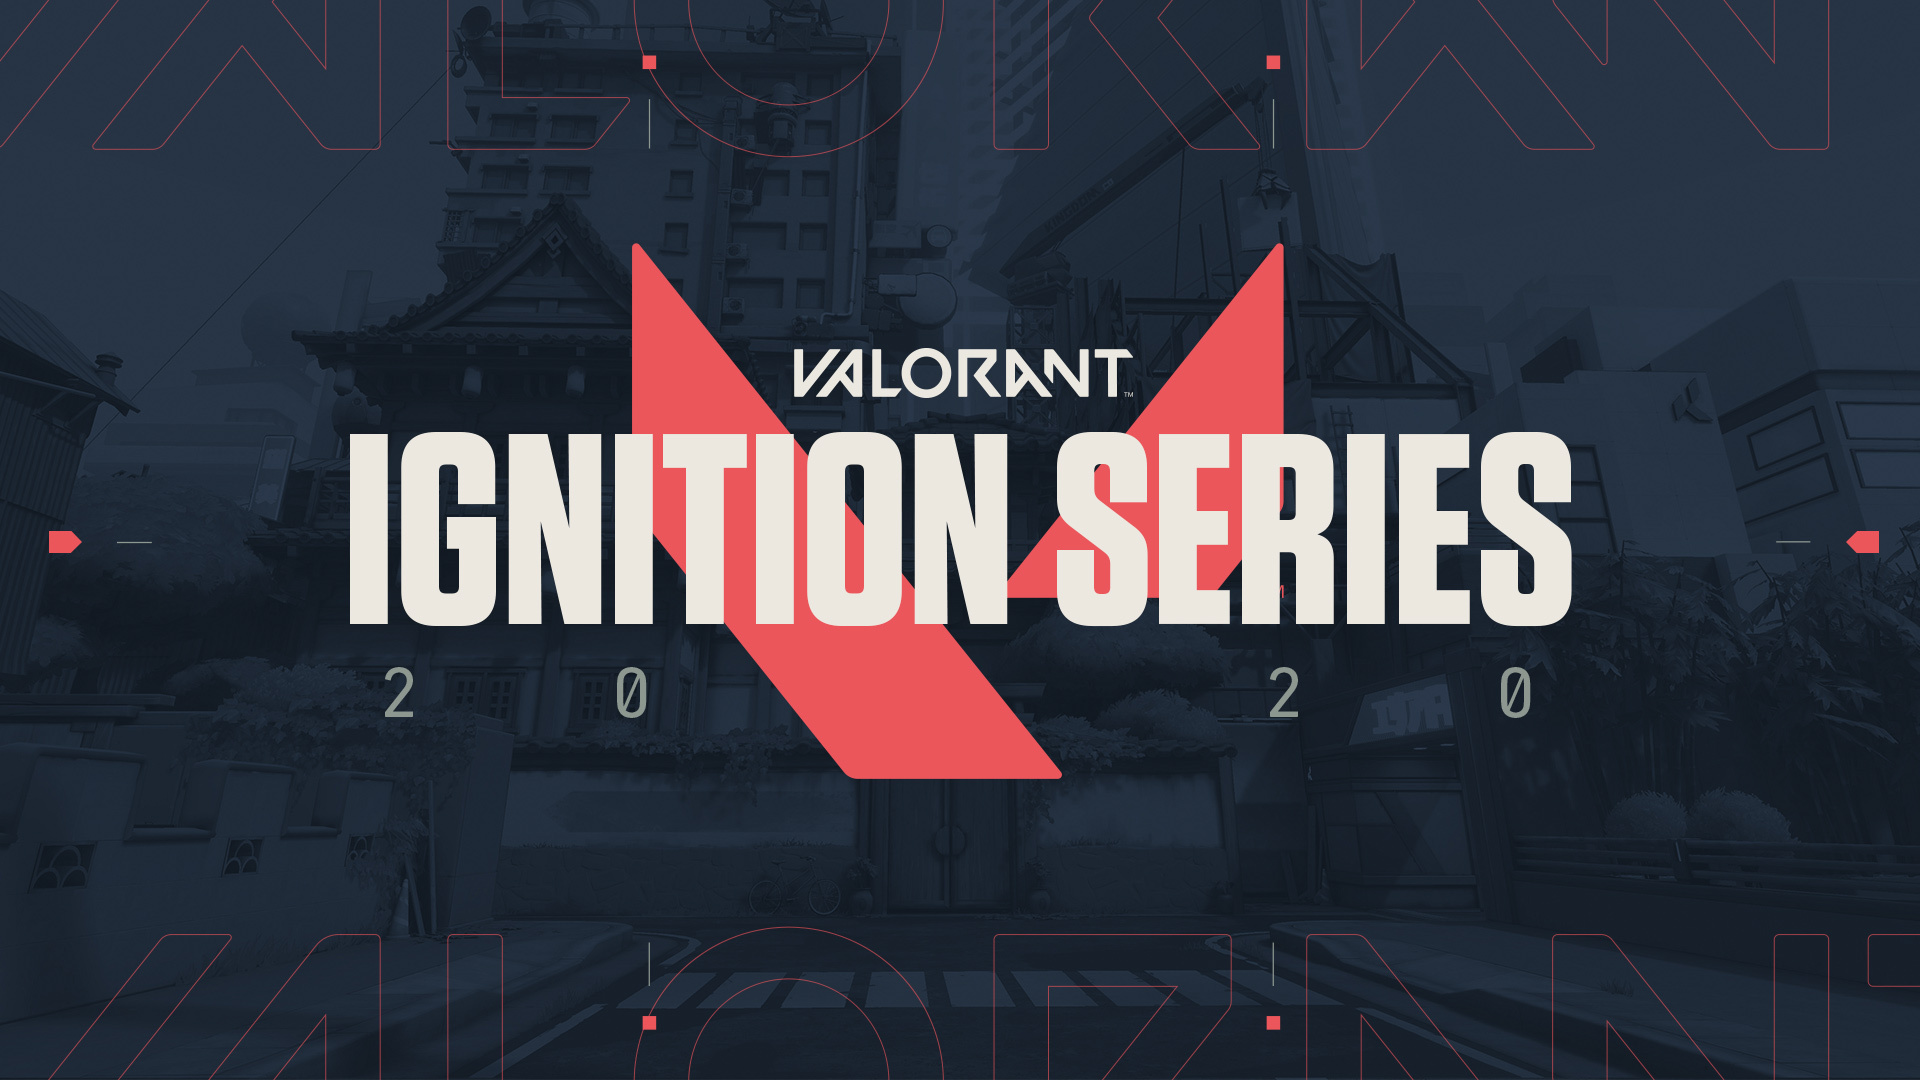 Ignition Series Valorant